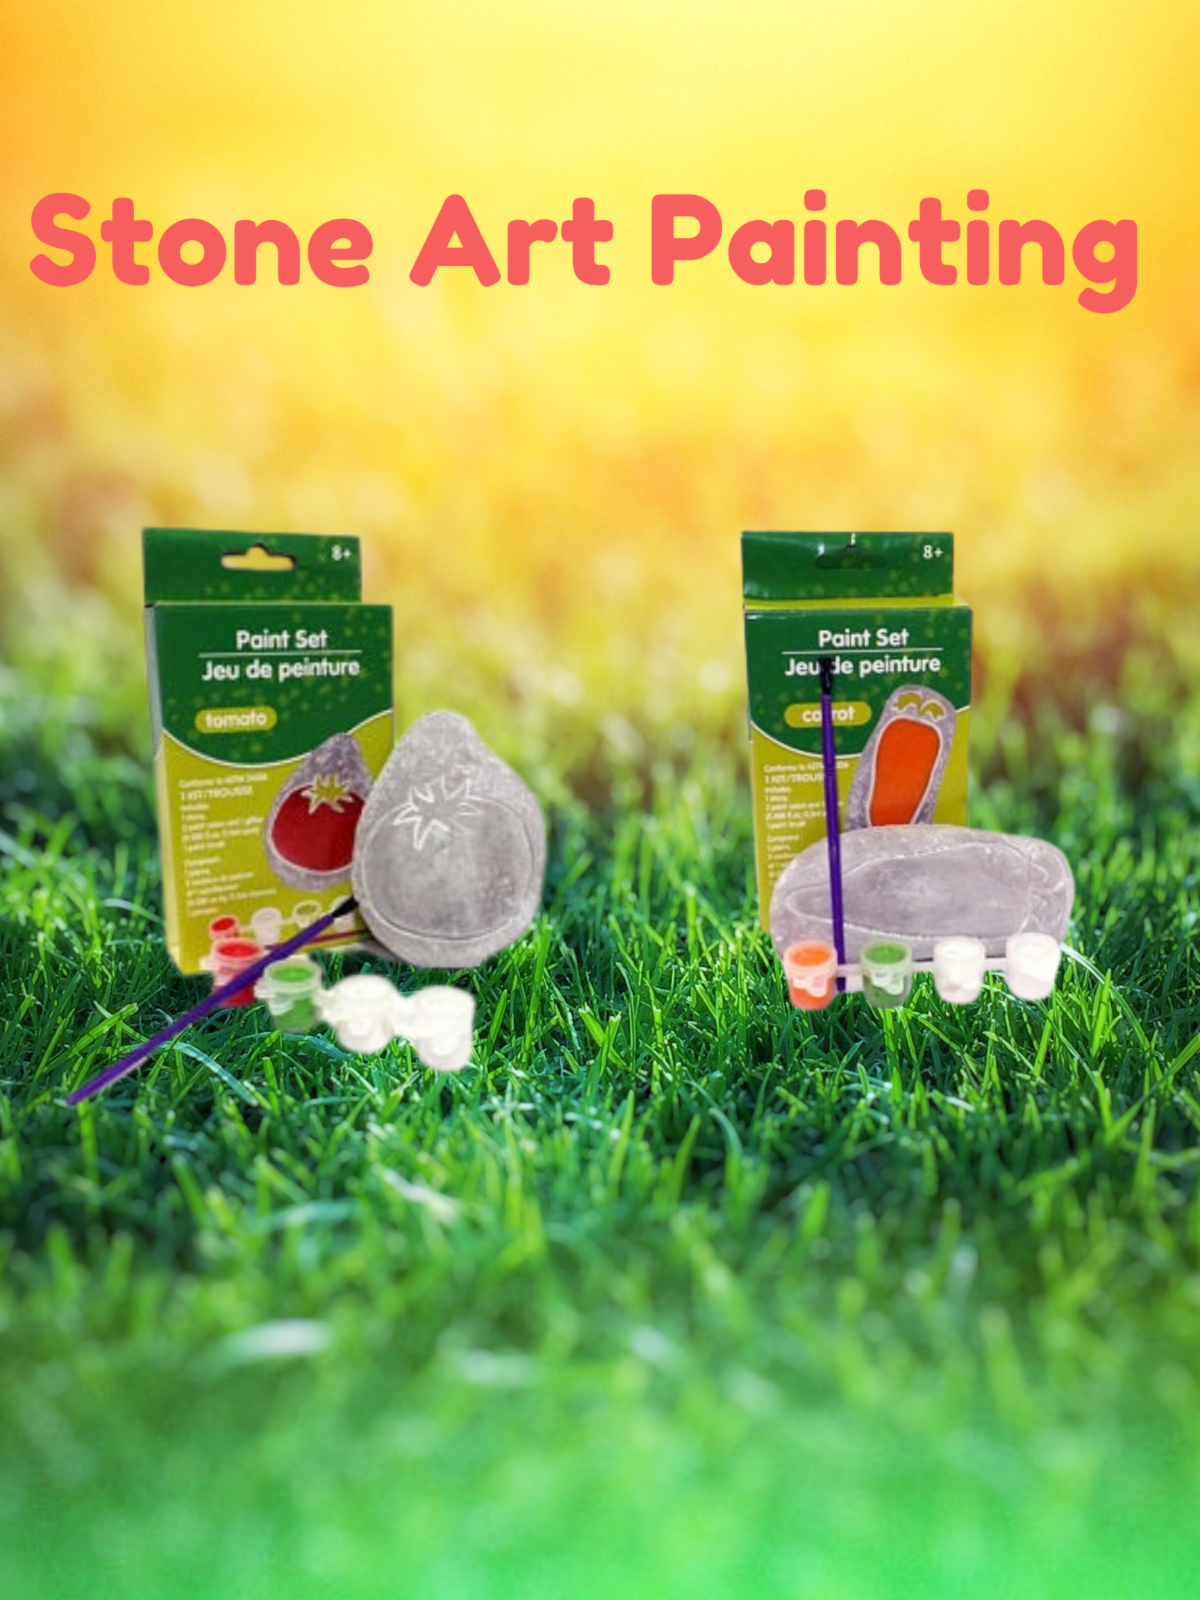 Stone Art Painting Craft.png